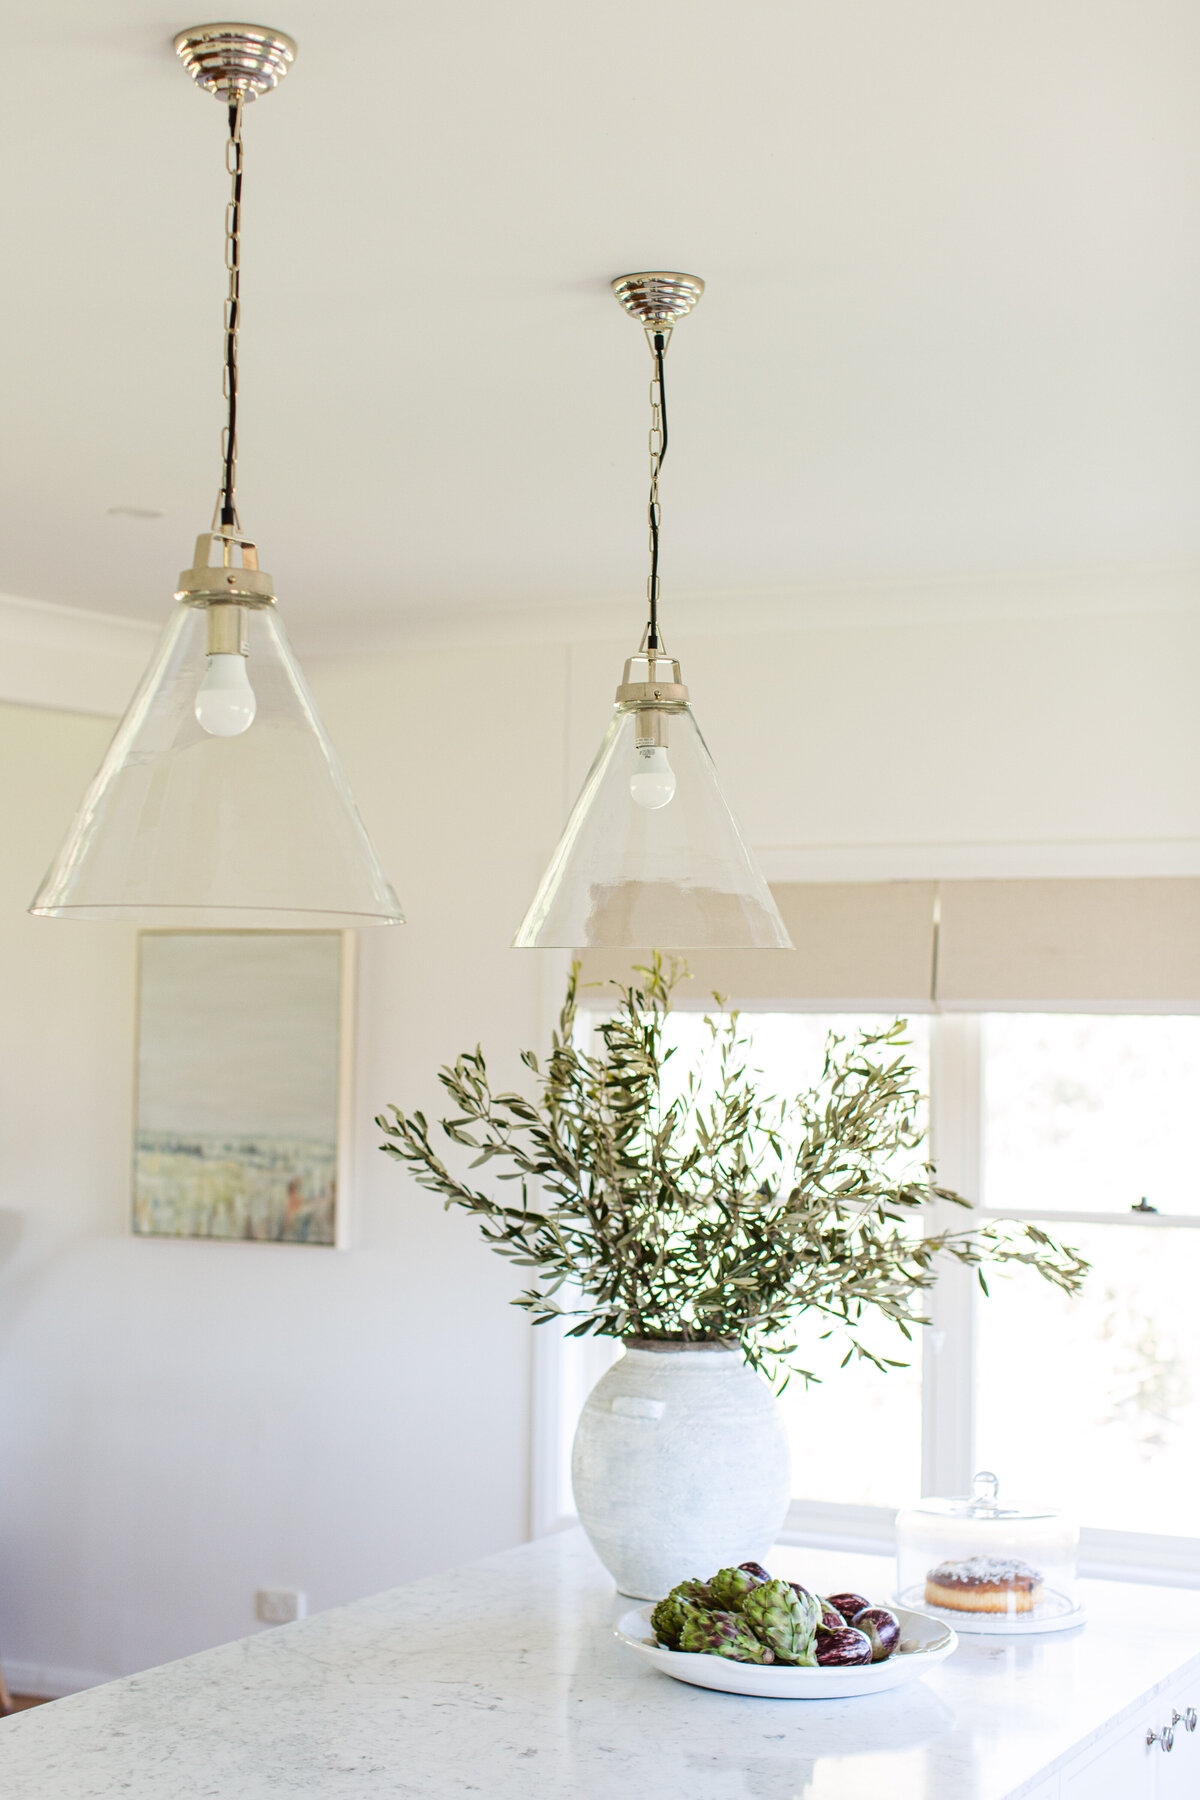 The Design Paddock - Newcastle NSW, Hunter Valley, Brand Interior Design Photographer - Sheri McMahon Fine Art Film -00163